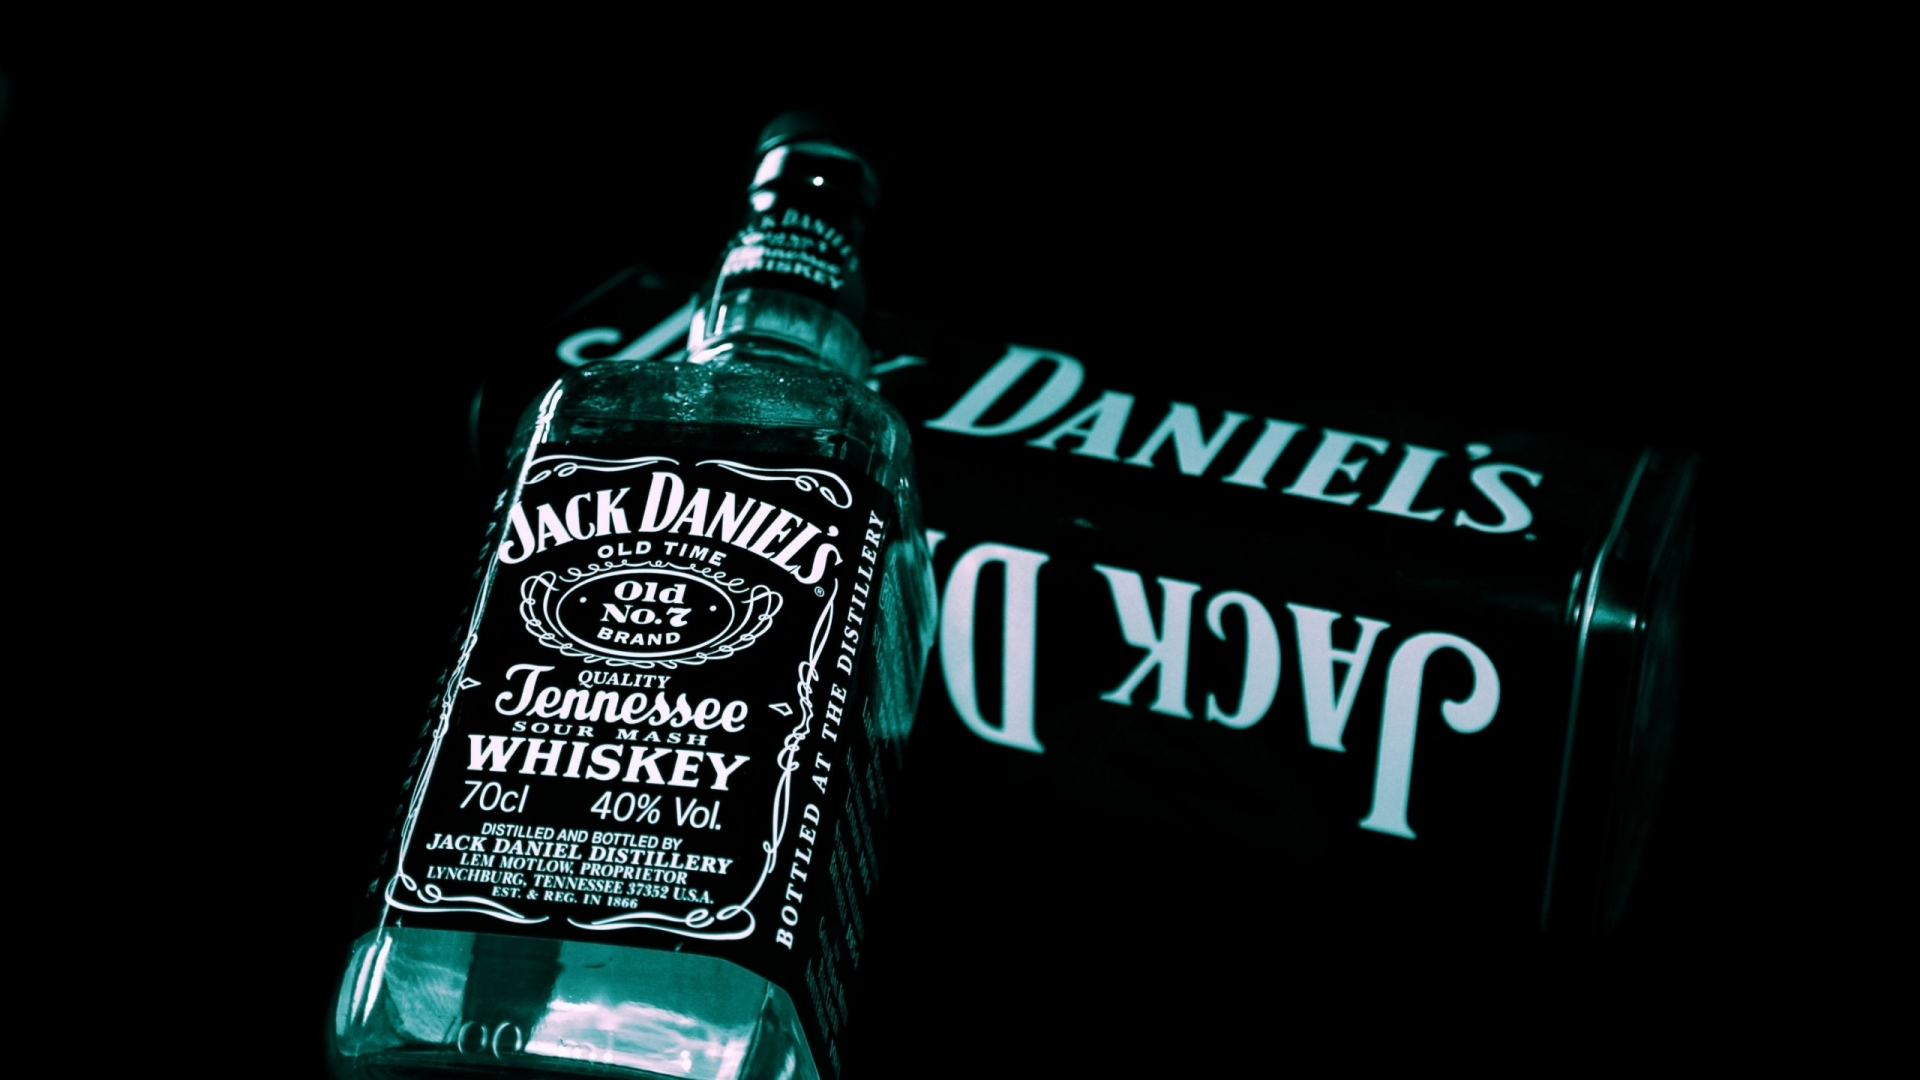 Download wallpaper 1920x1080 jack daniels whiskey brandy bottle jack daniels whiskey brandy voltagebd Gallery